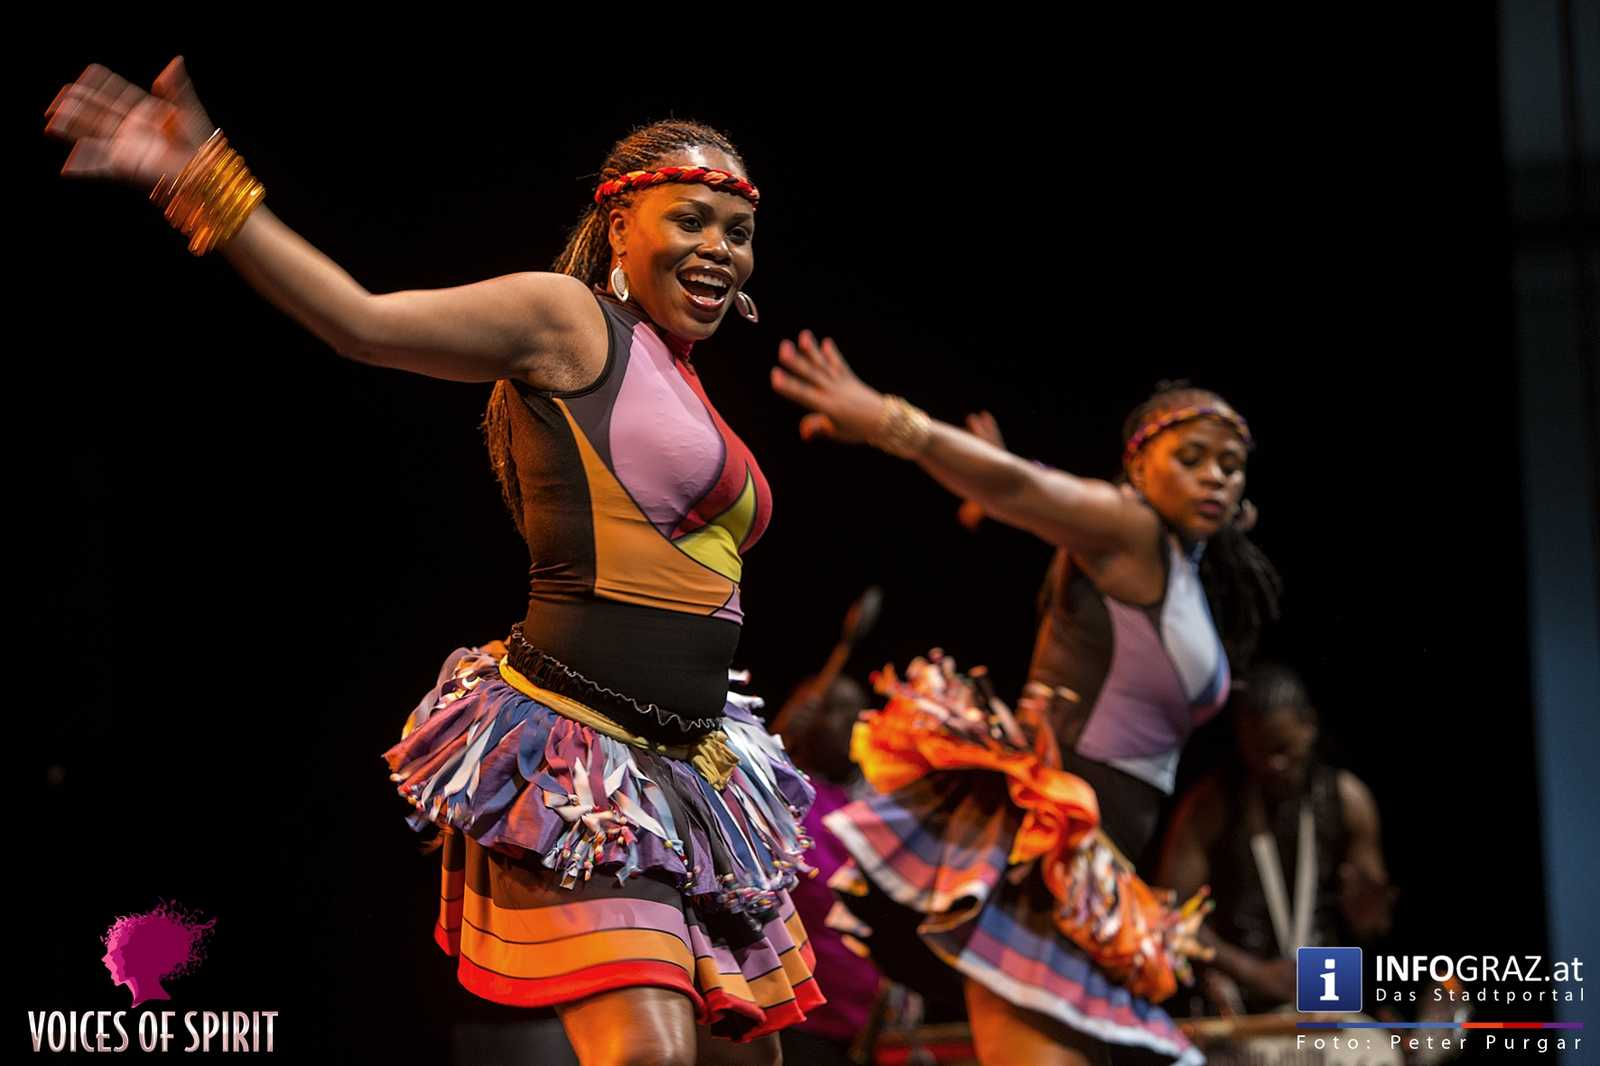 soweto gospel choir internationales chorfestival statdthalle graz voices of spirit eroeffnung festivals 2016 086